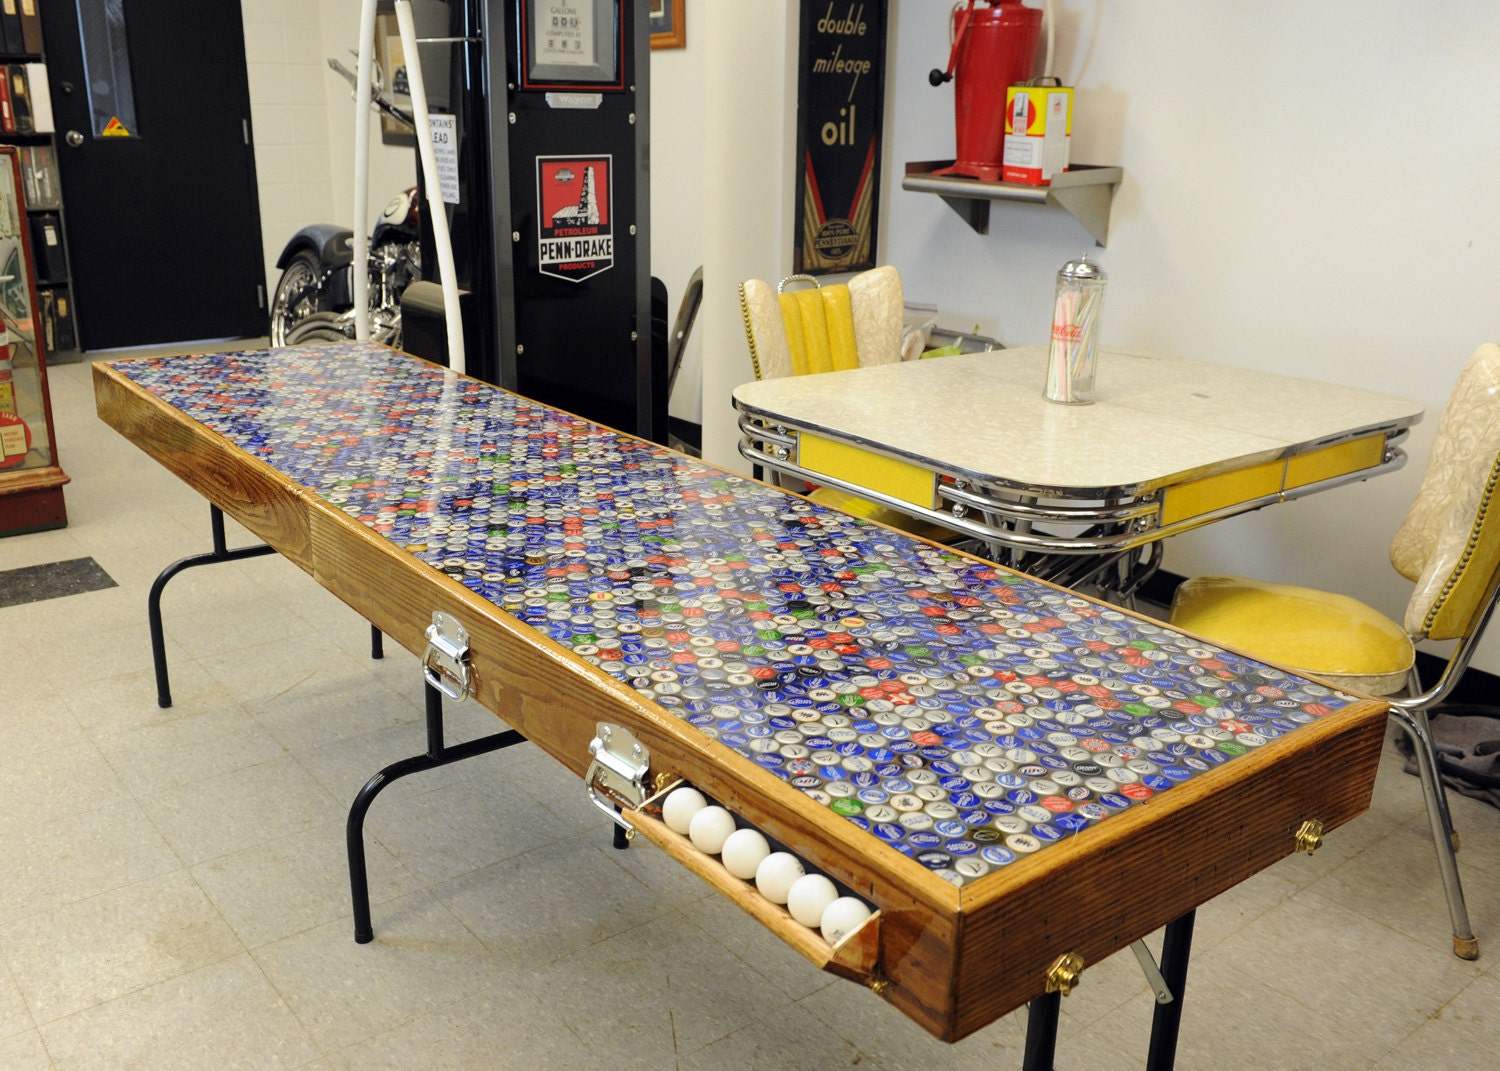 Homemade beer pong table - Portable Beer Pong Table Built From Reclaimed Wood And